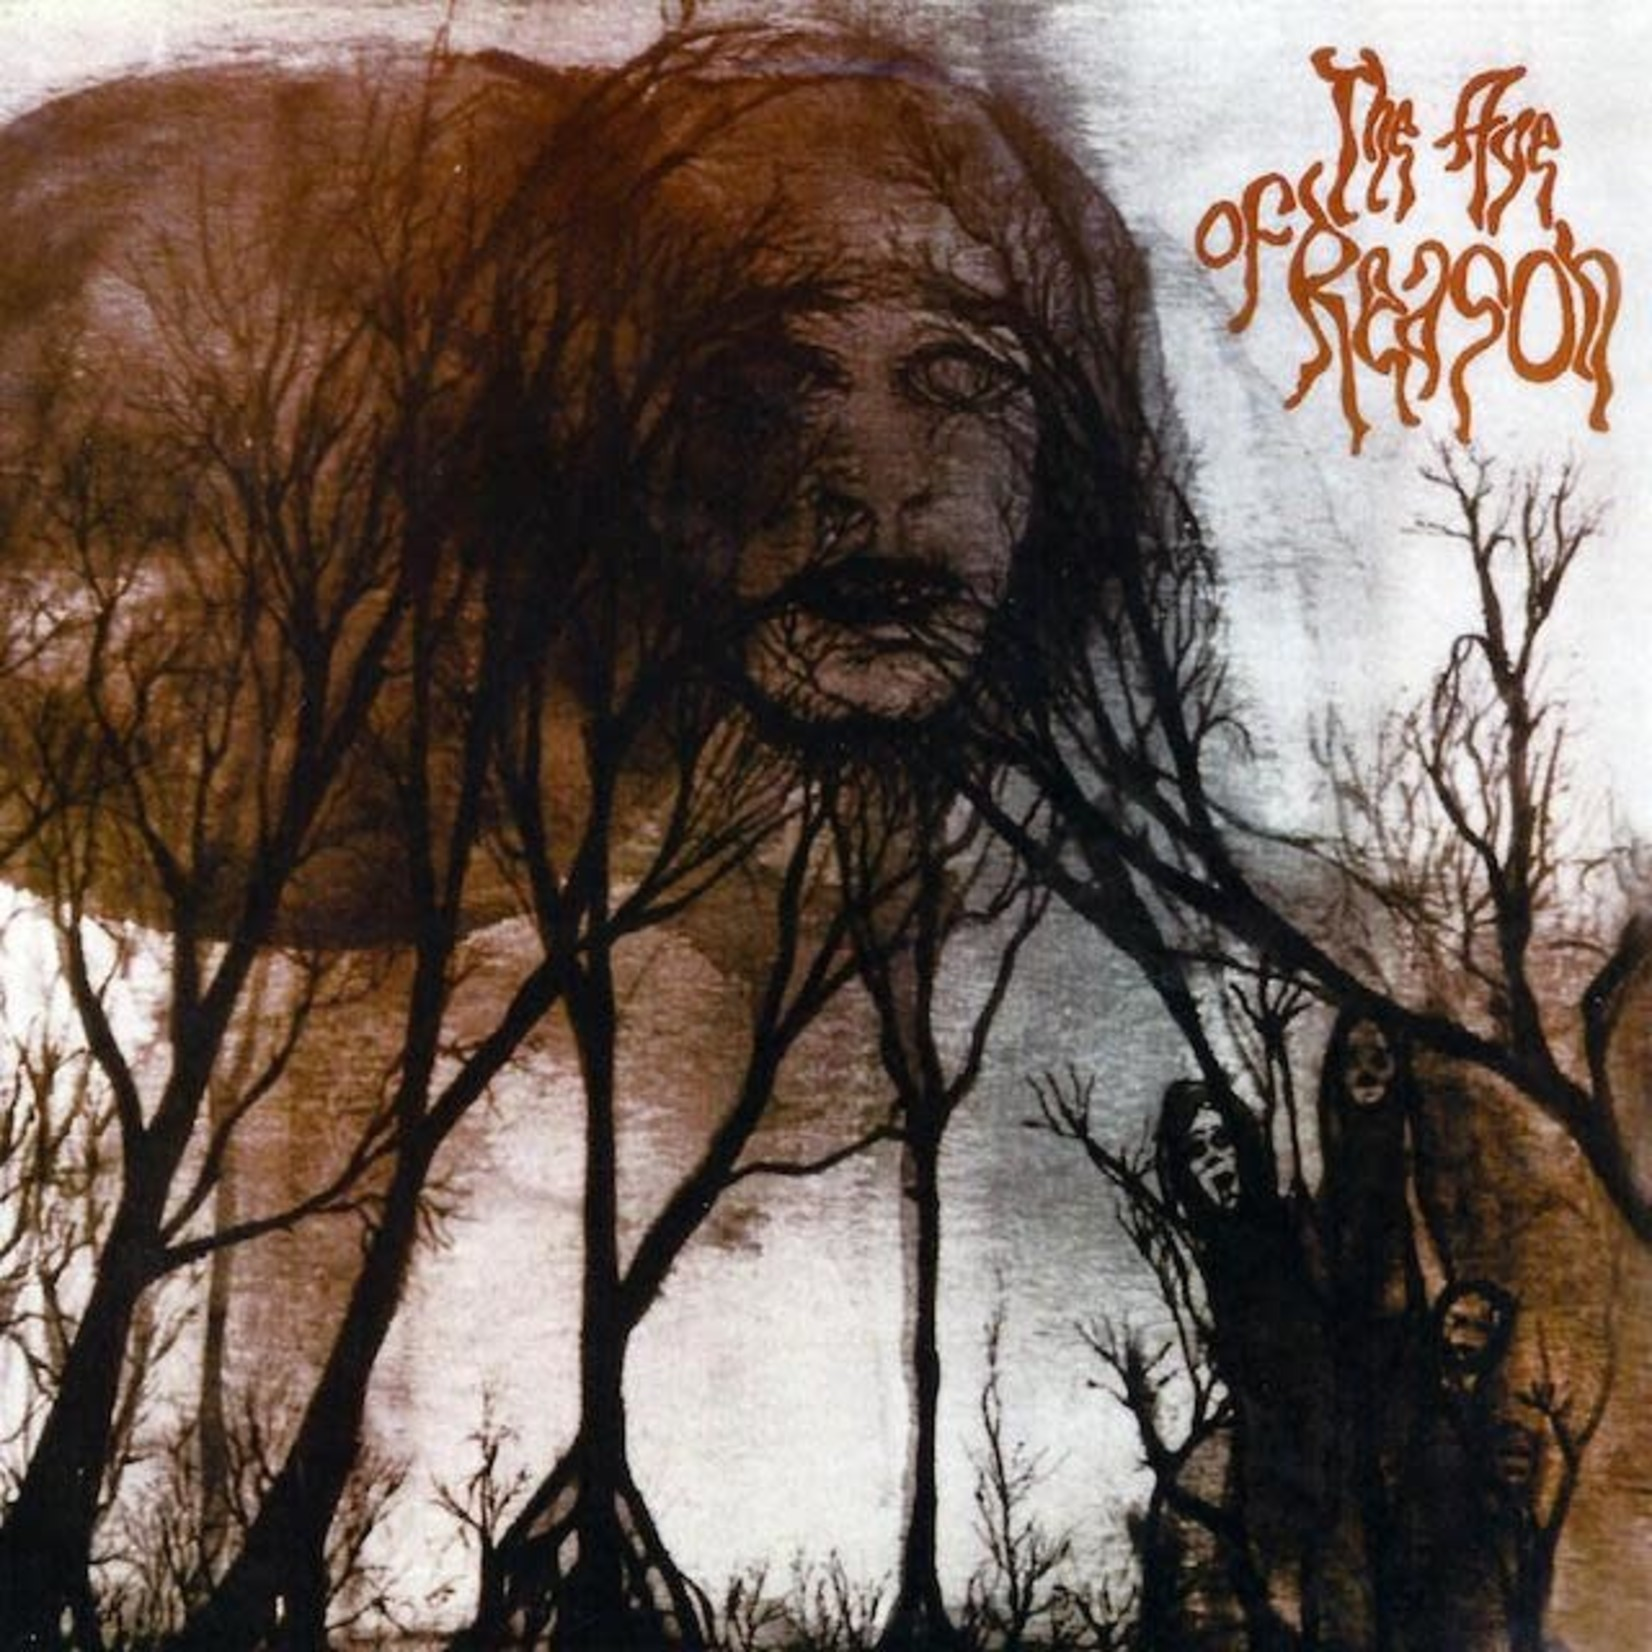 Vinyl The Age of Reason - S/T